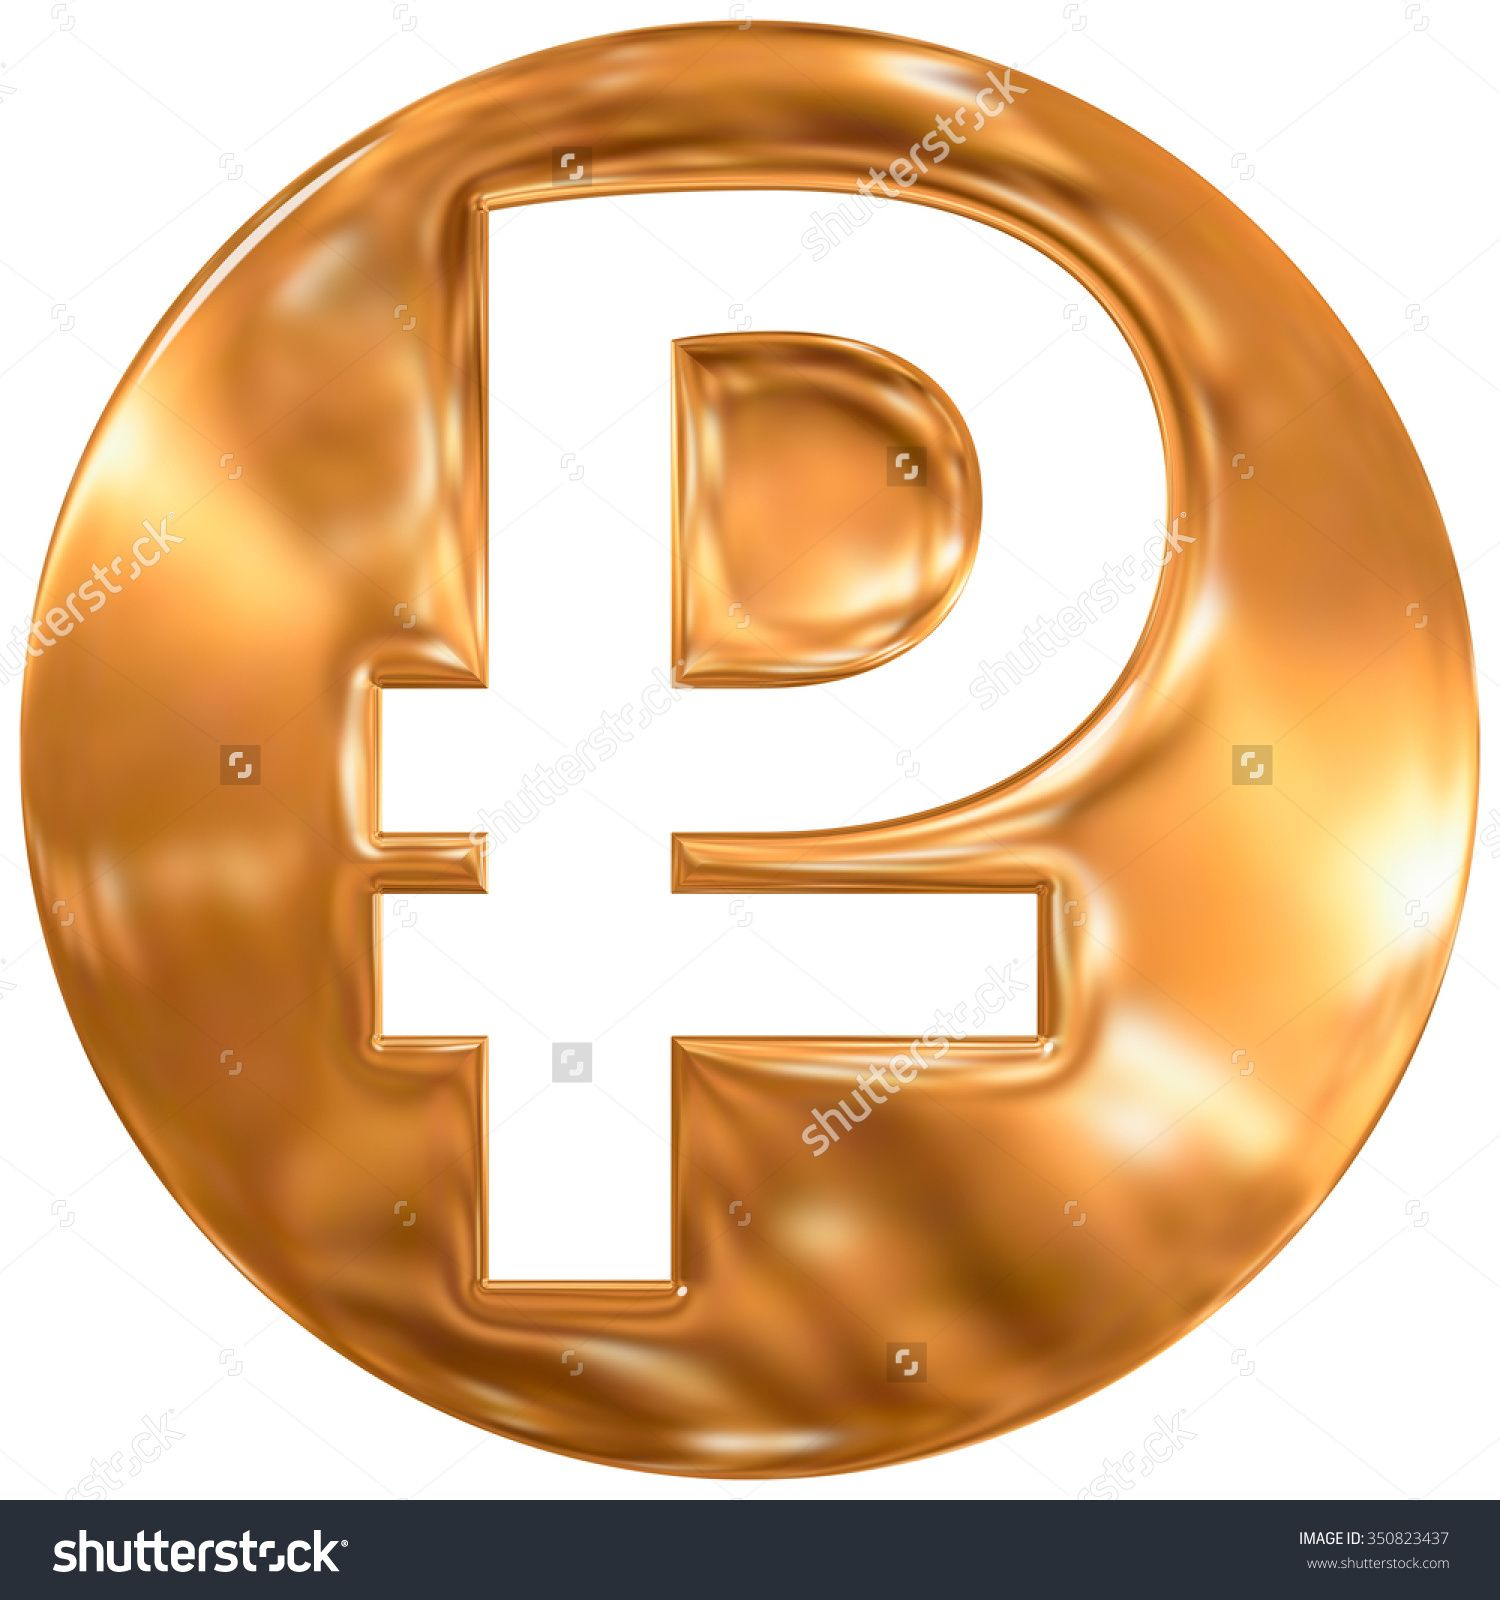 russian ruble currency symbol